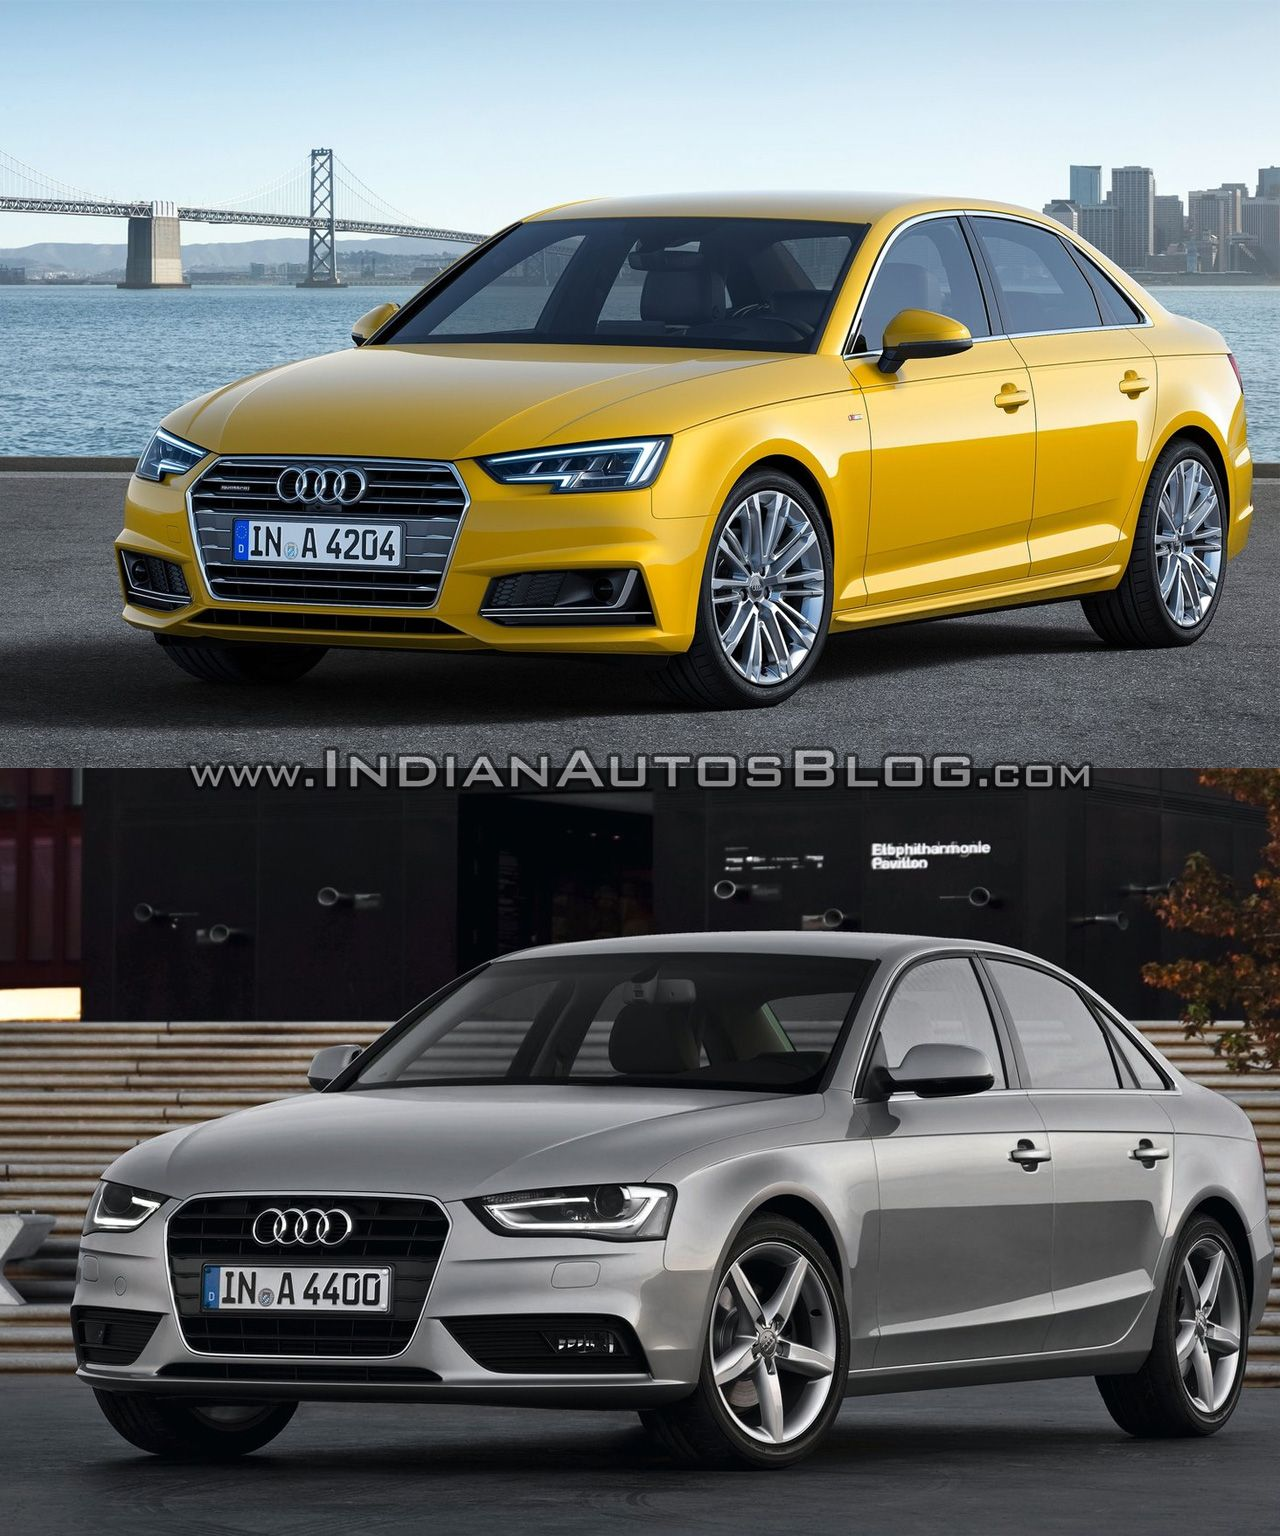 2016 audi a4 b9 vs 2013 audi a4 b8 old vs new. Black Bedroom Furniture Sets. Home Design Ideas